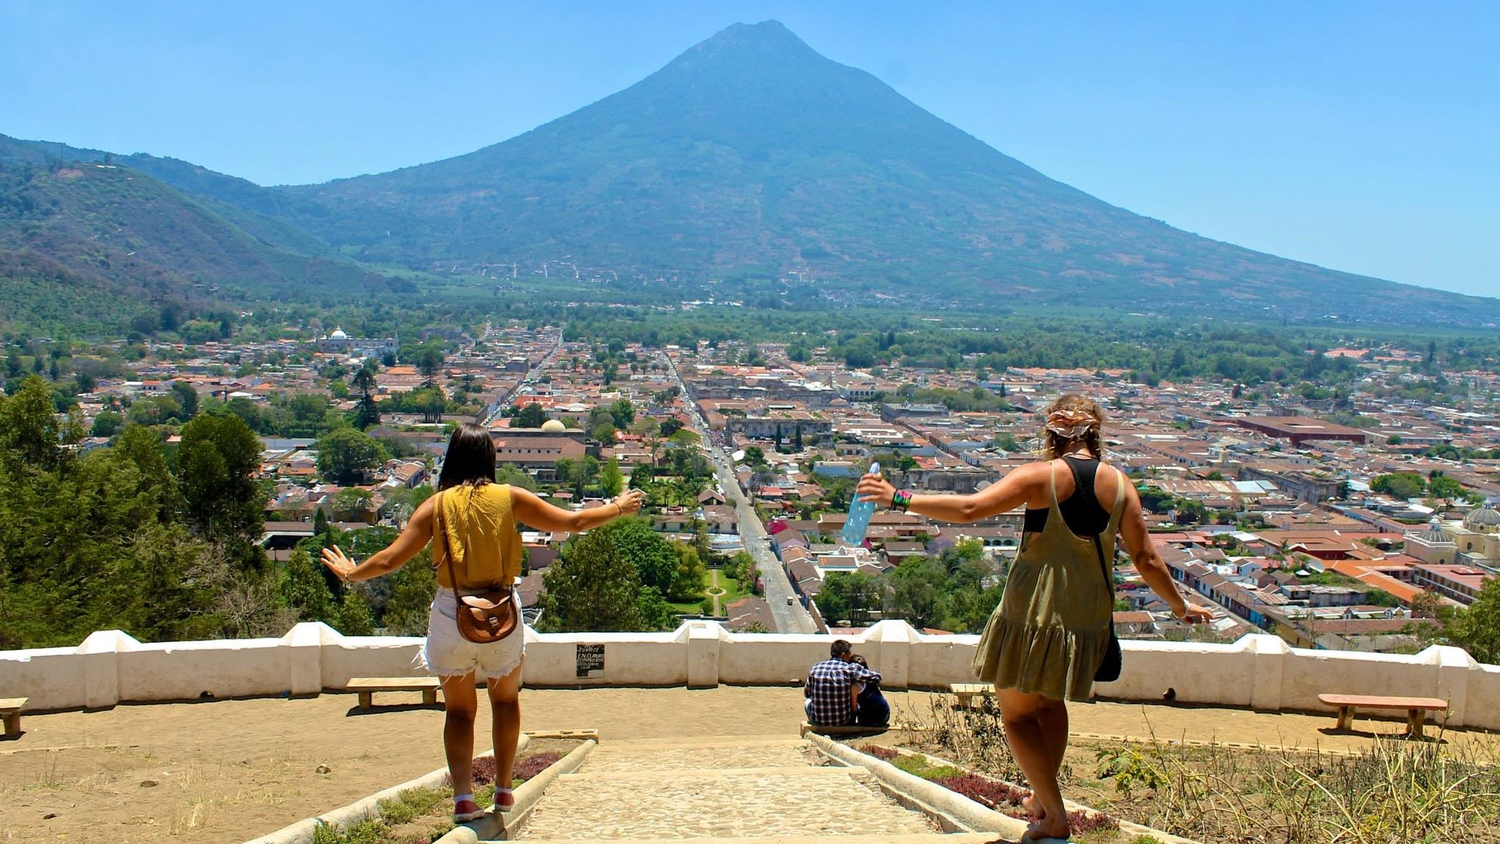 guatemala antigua volcano run budget travel destinations backpackers